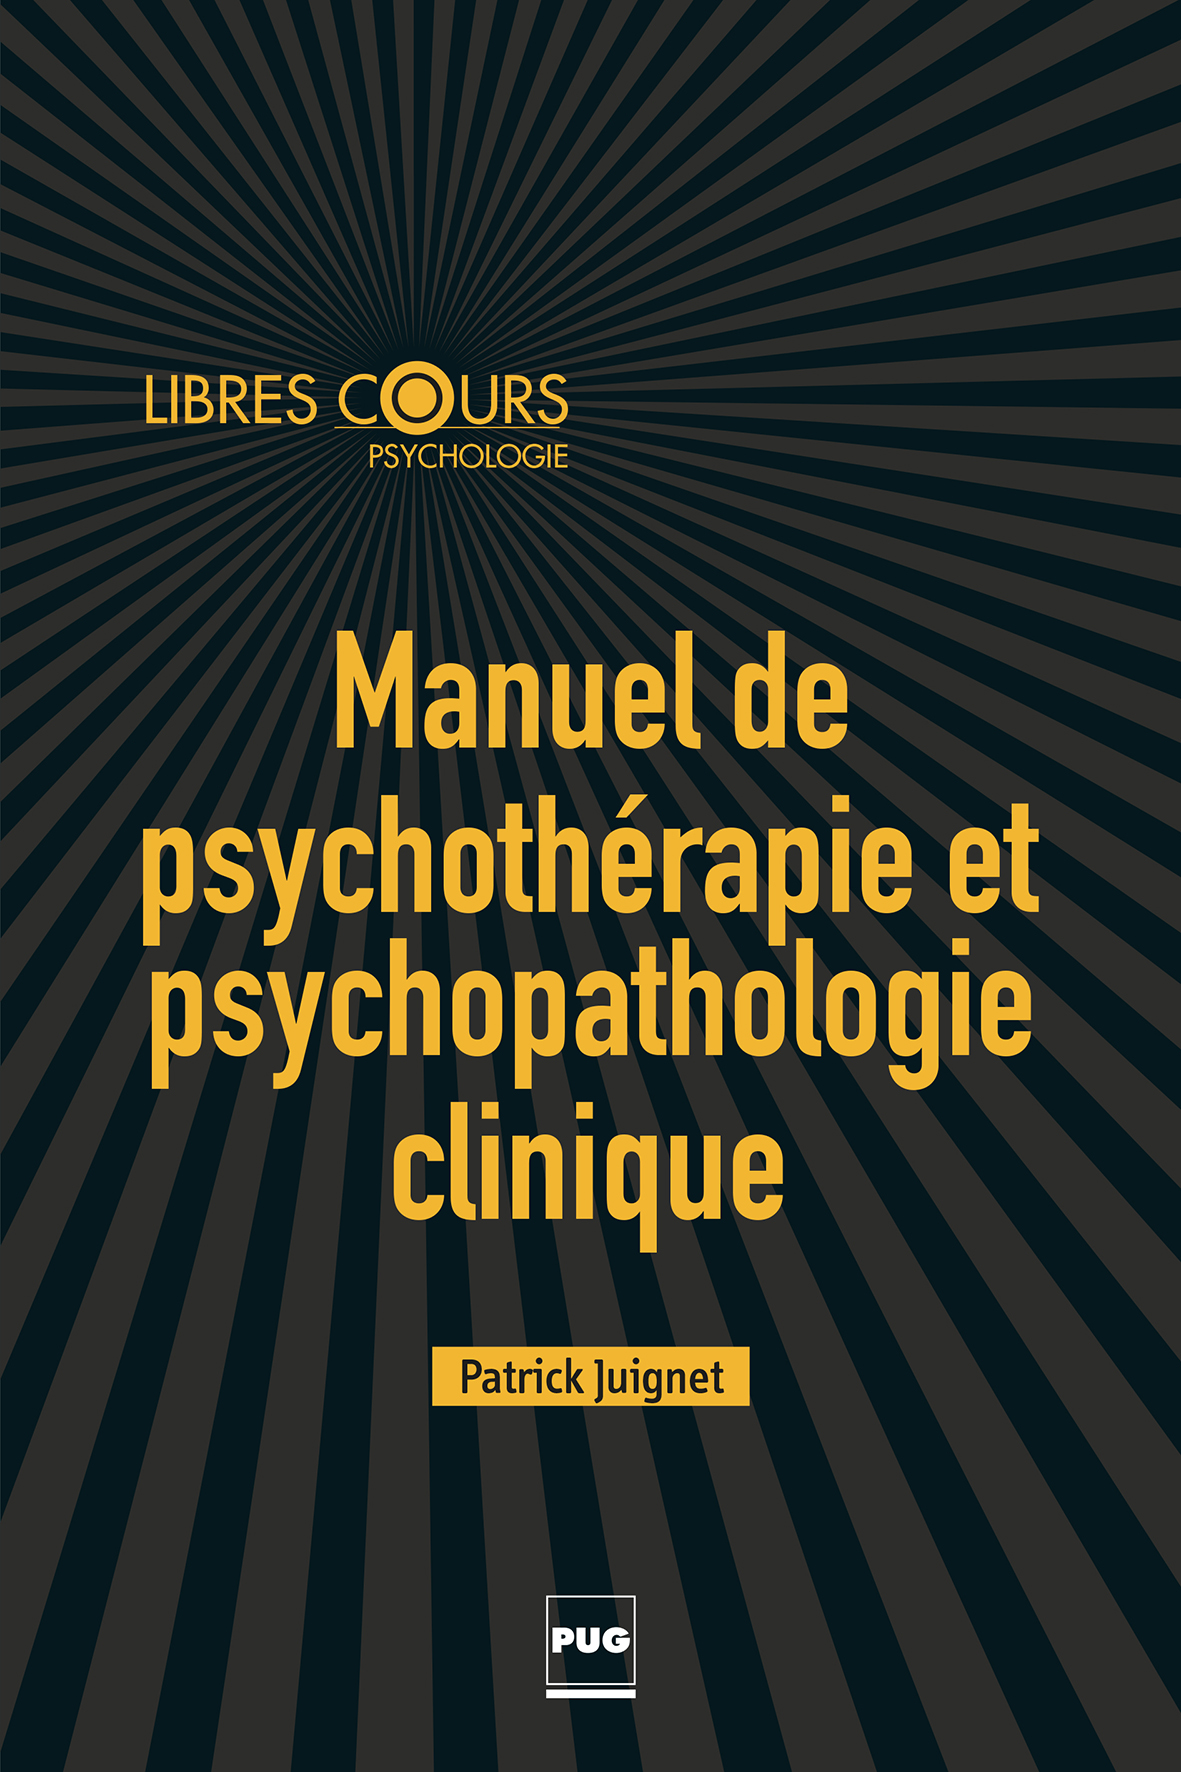 manuel de psychoth u00e9rapie et psychopathologie clinique - enfants  adolescents  adultes